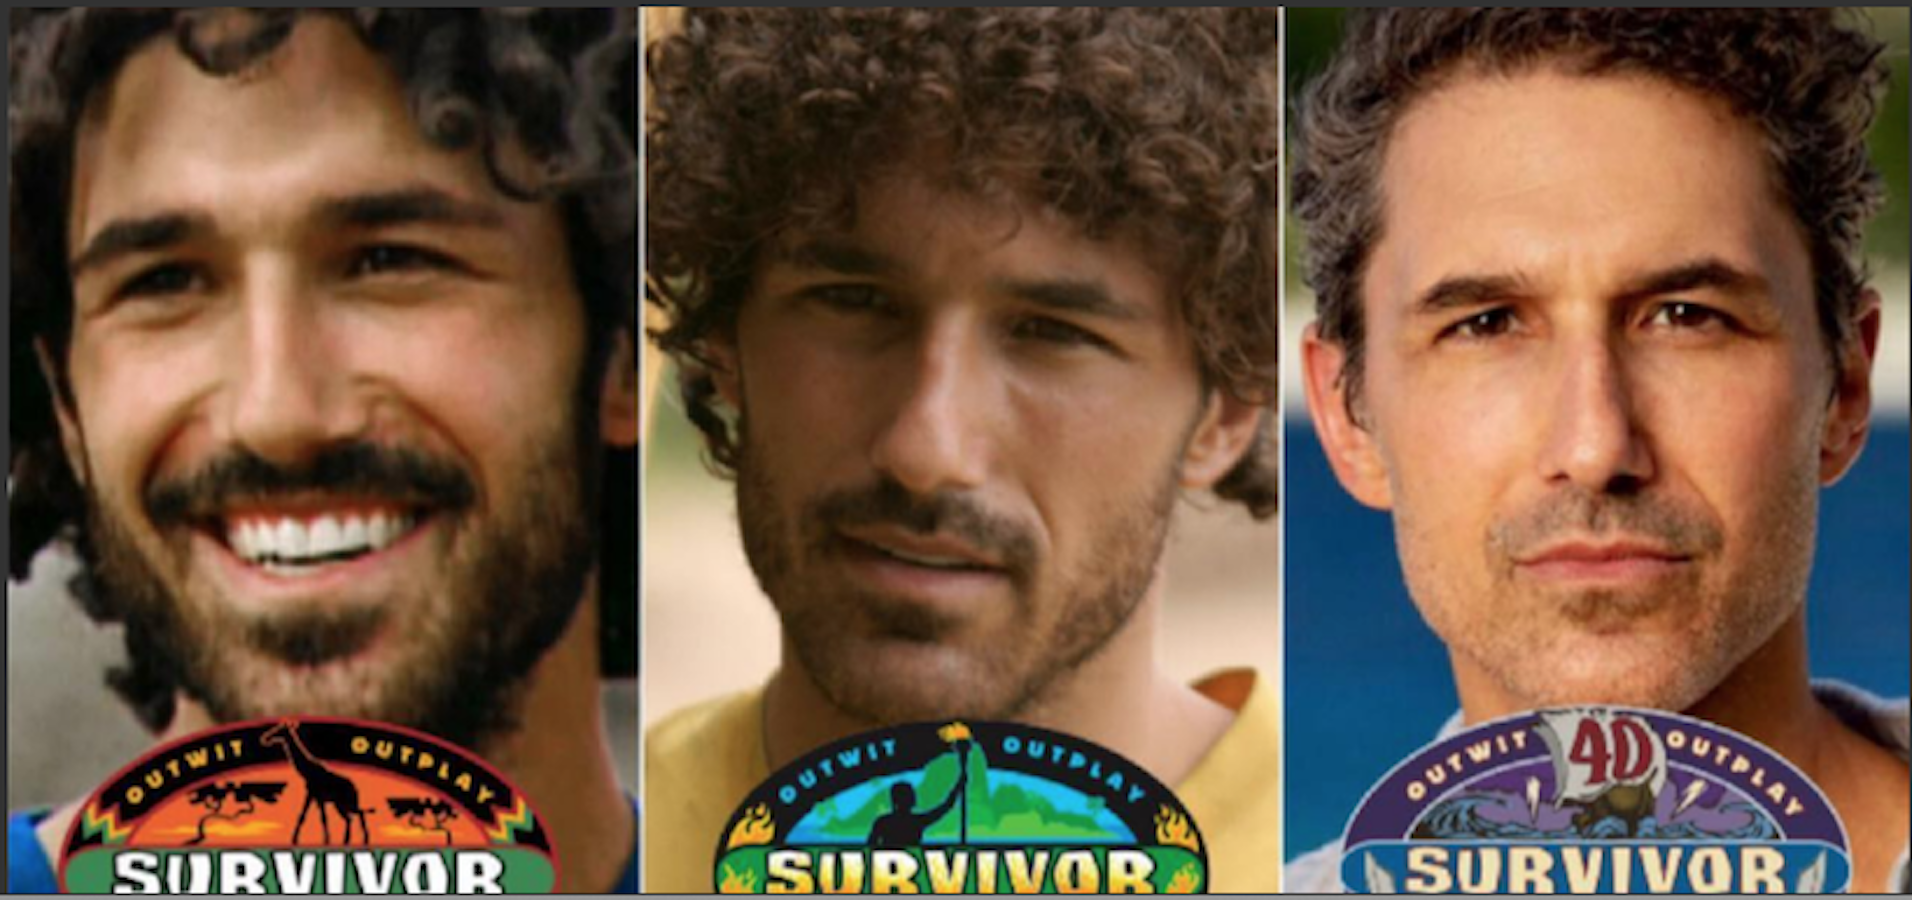 Survivor Winner, Ethan Zohn: How His Faith And Judaism Guided His Life